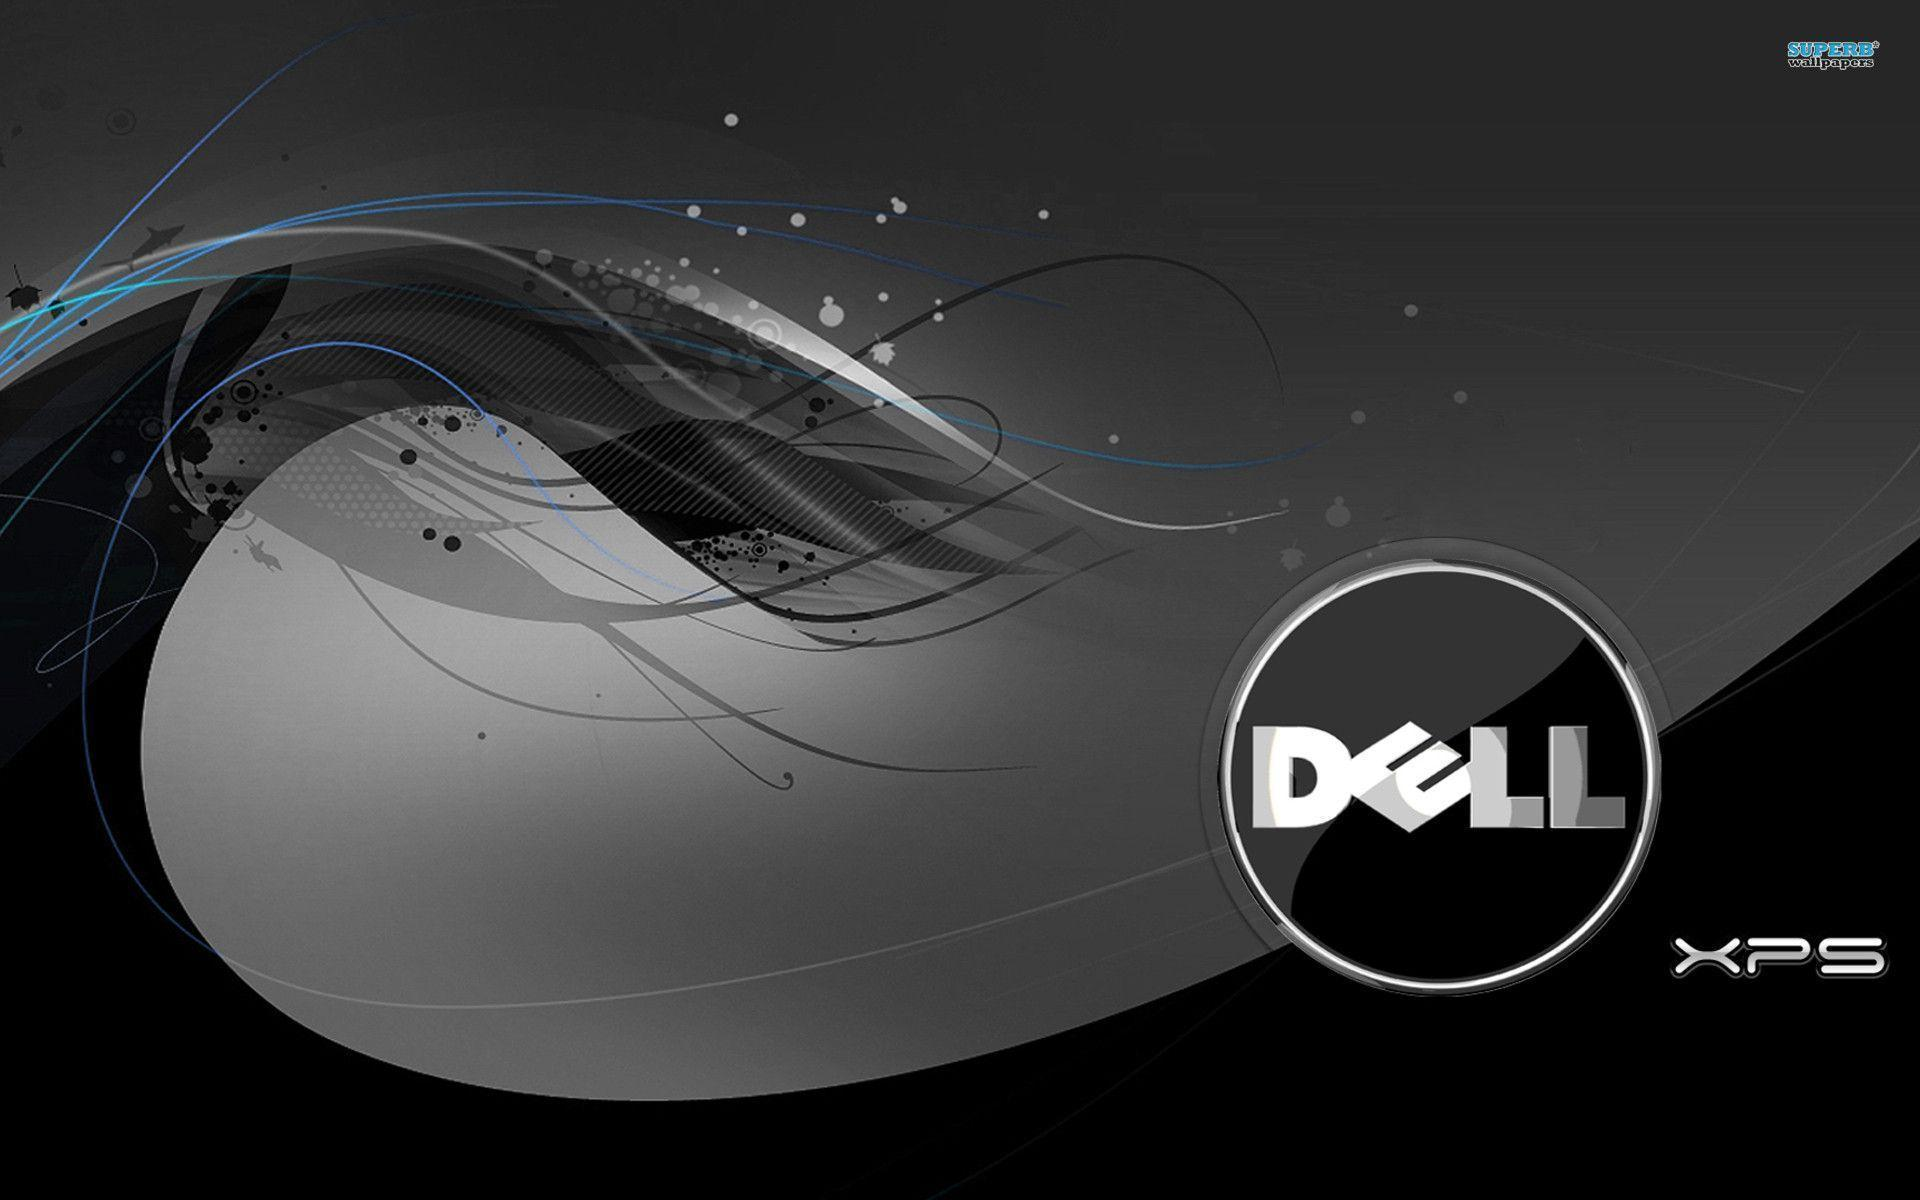 xps wallpapers hd dell - photo #3